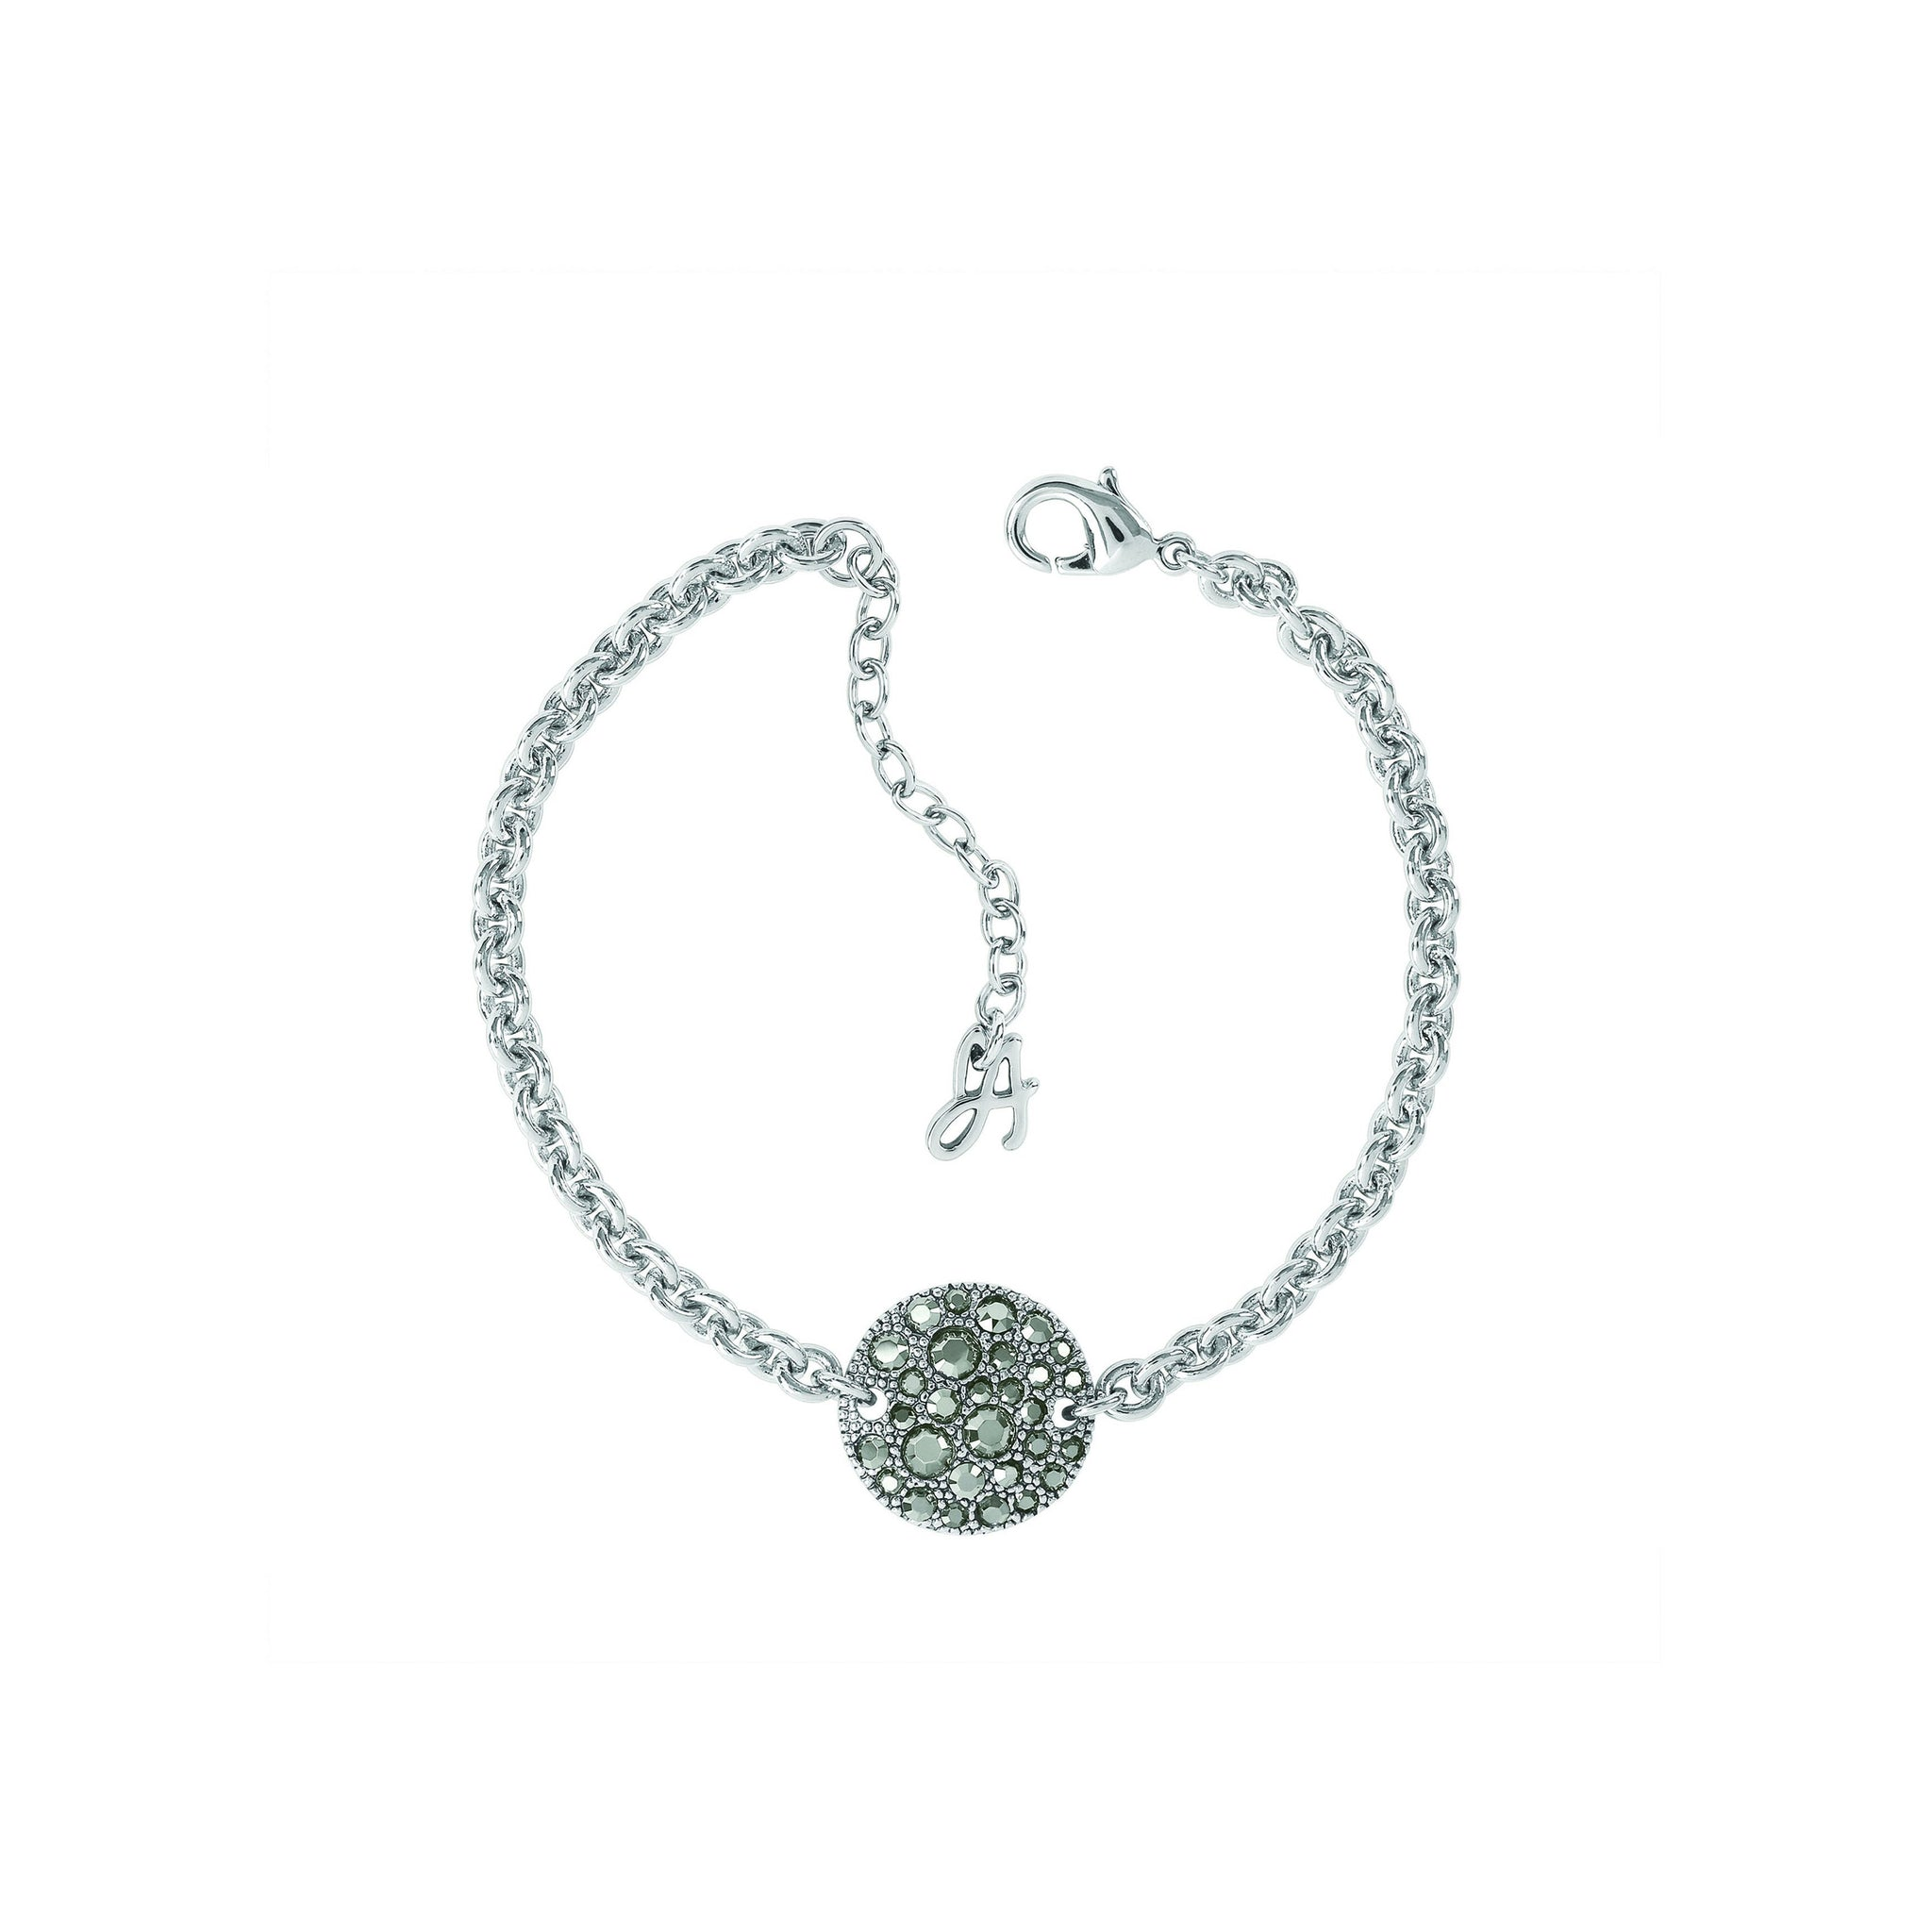 Small Metallic Pavé Disc Bracelet - Crystal/Rhodium Plated